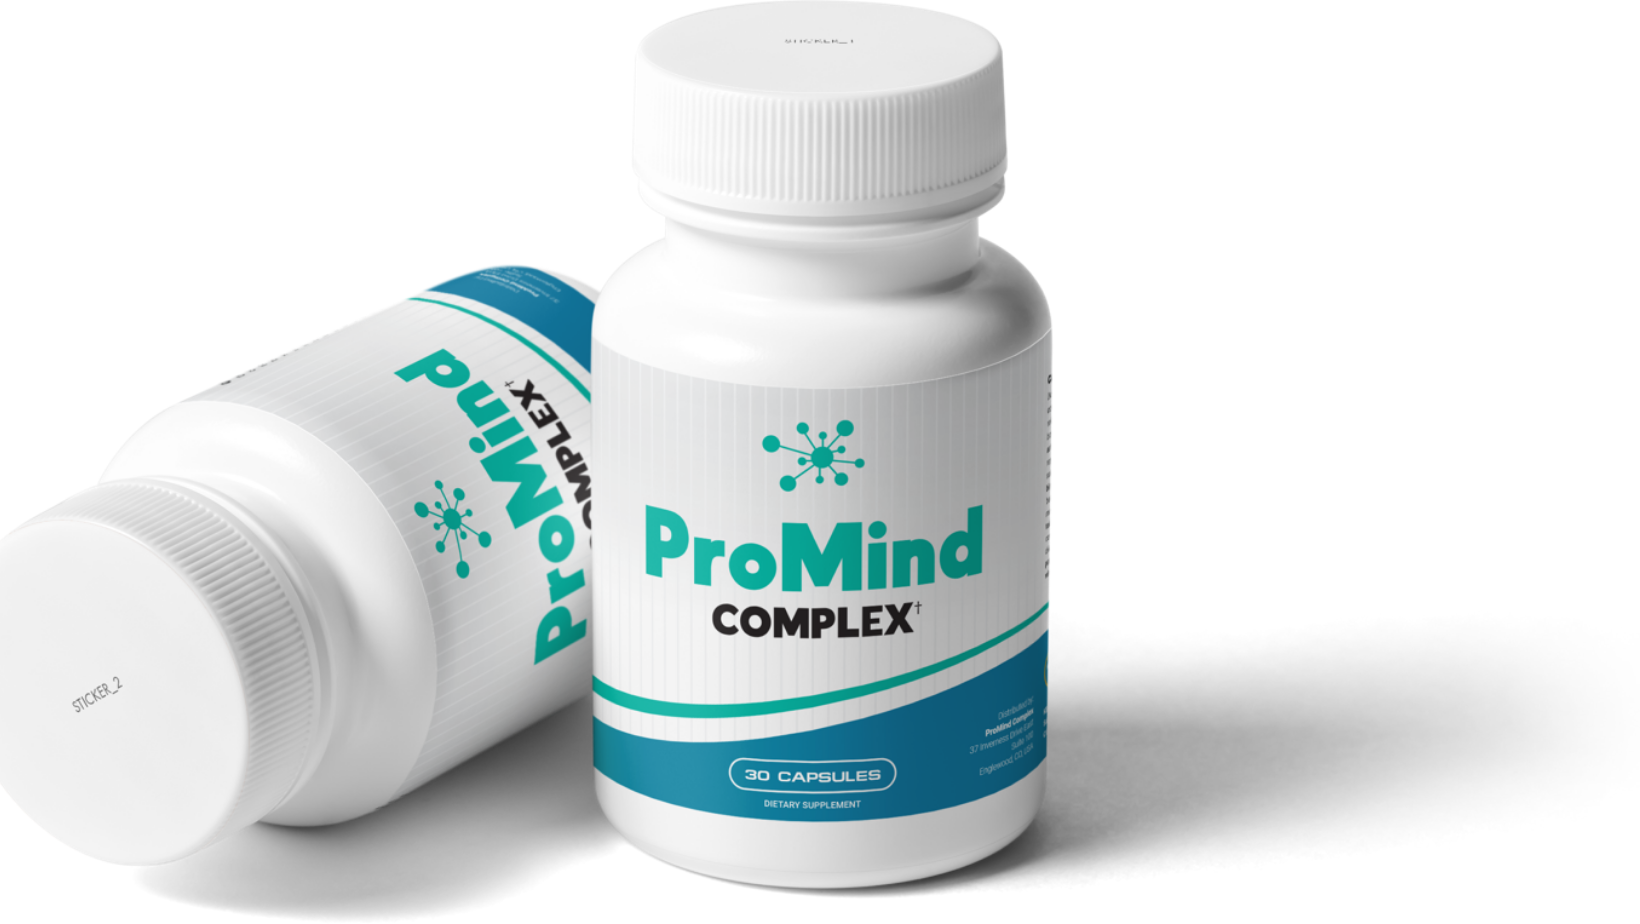 ProMind Complex Review: Scam Or Does It Really Work?